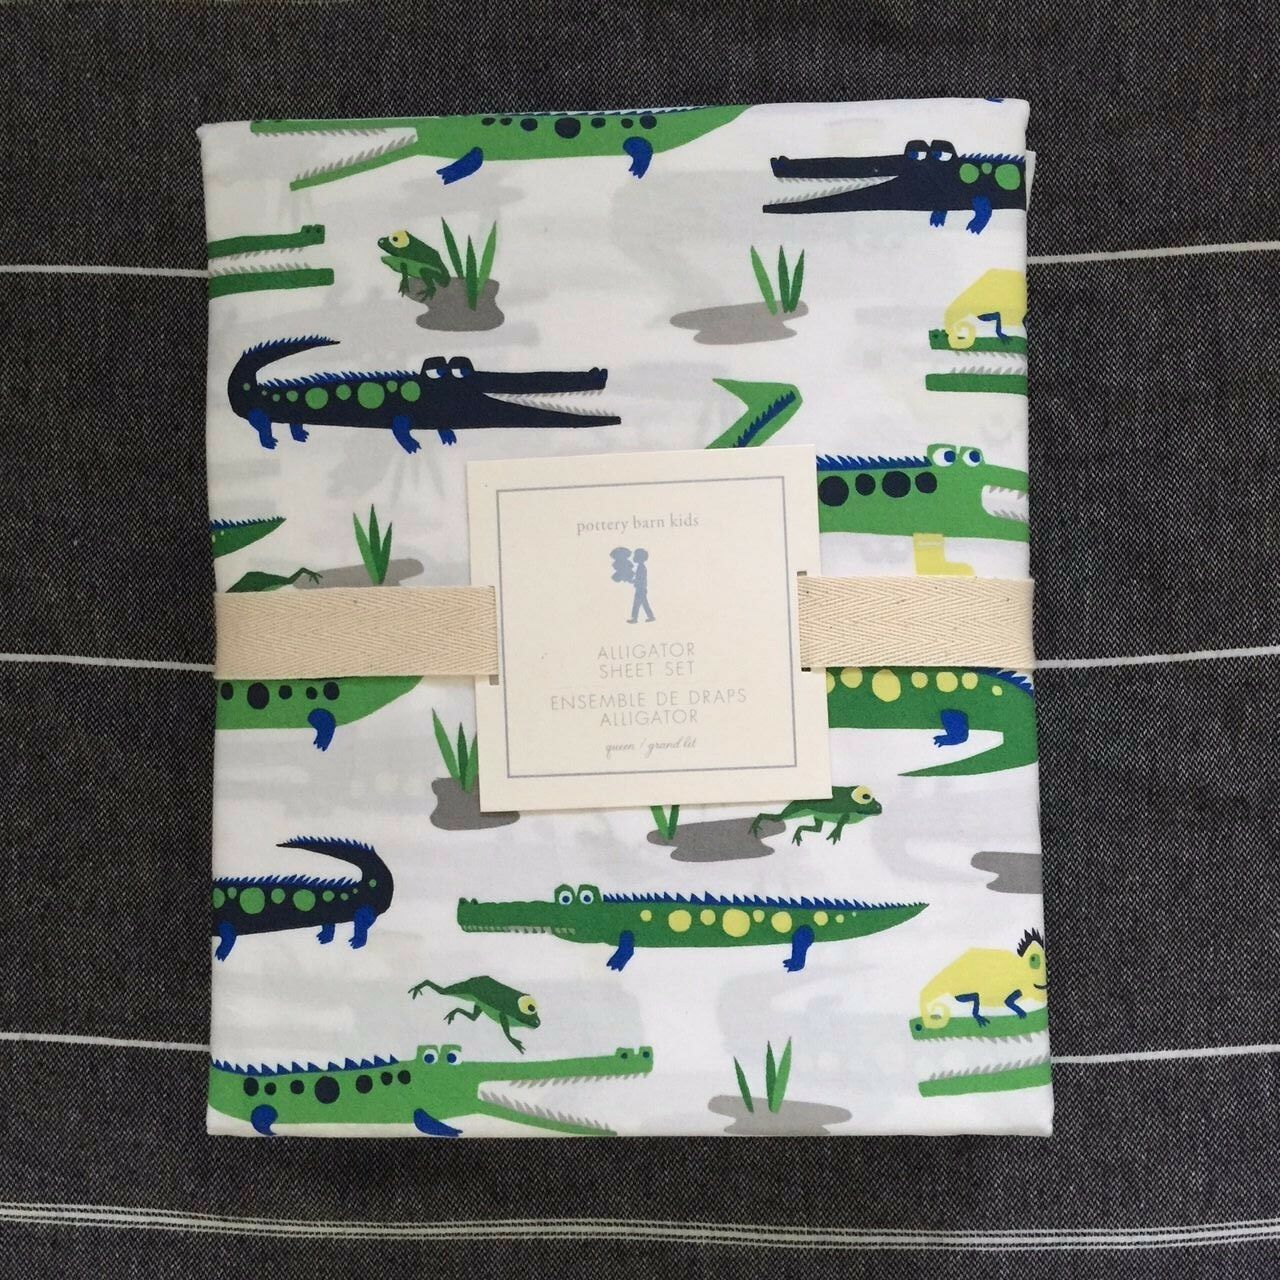 new pottery barn kids alligator full sheet set green navy. Black Bedroom Furniture Sets. Home Design Ideas